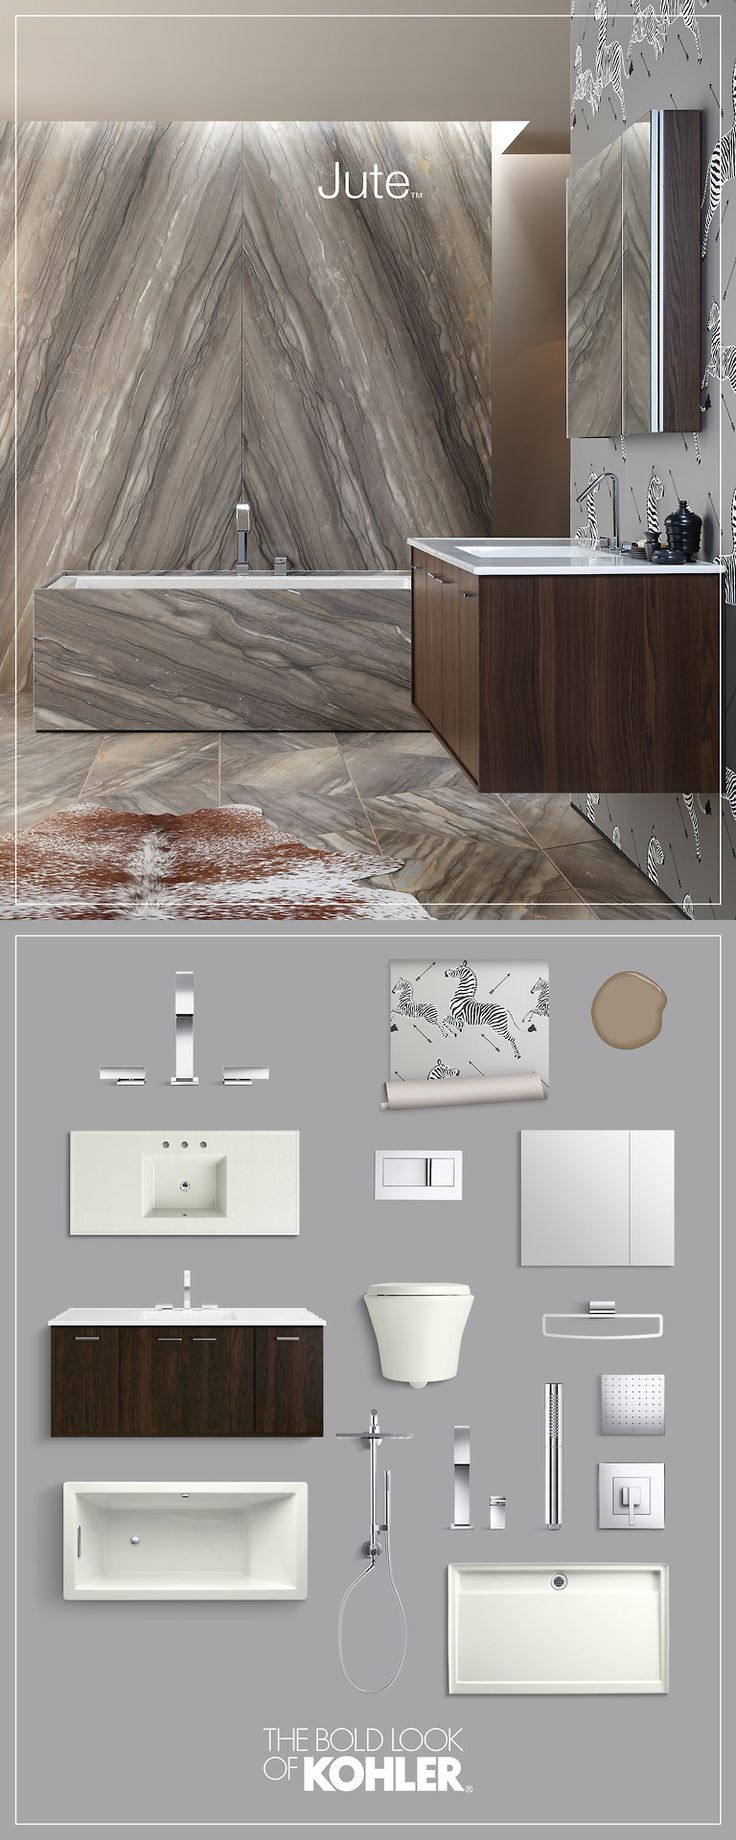 Photo On Get the look Modern bathroom with Kohler Jute vanity